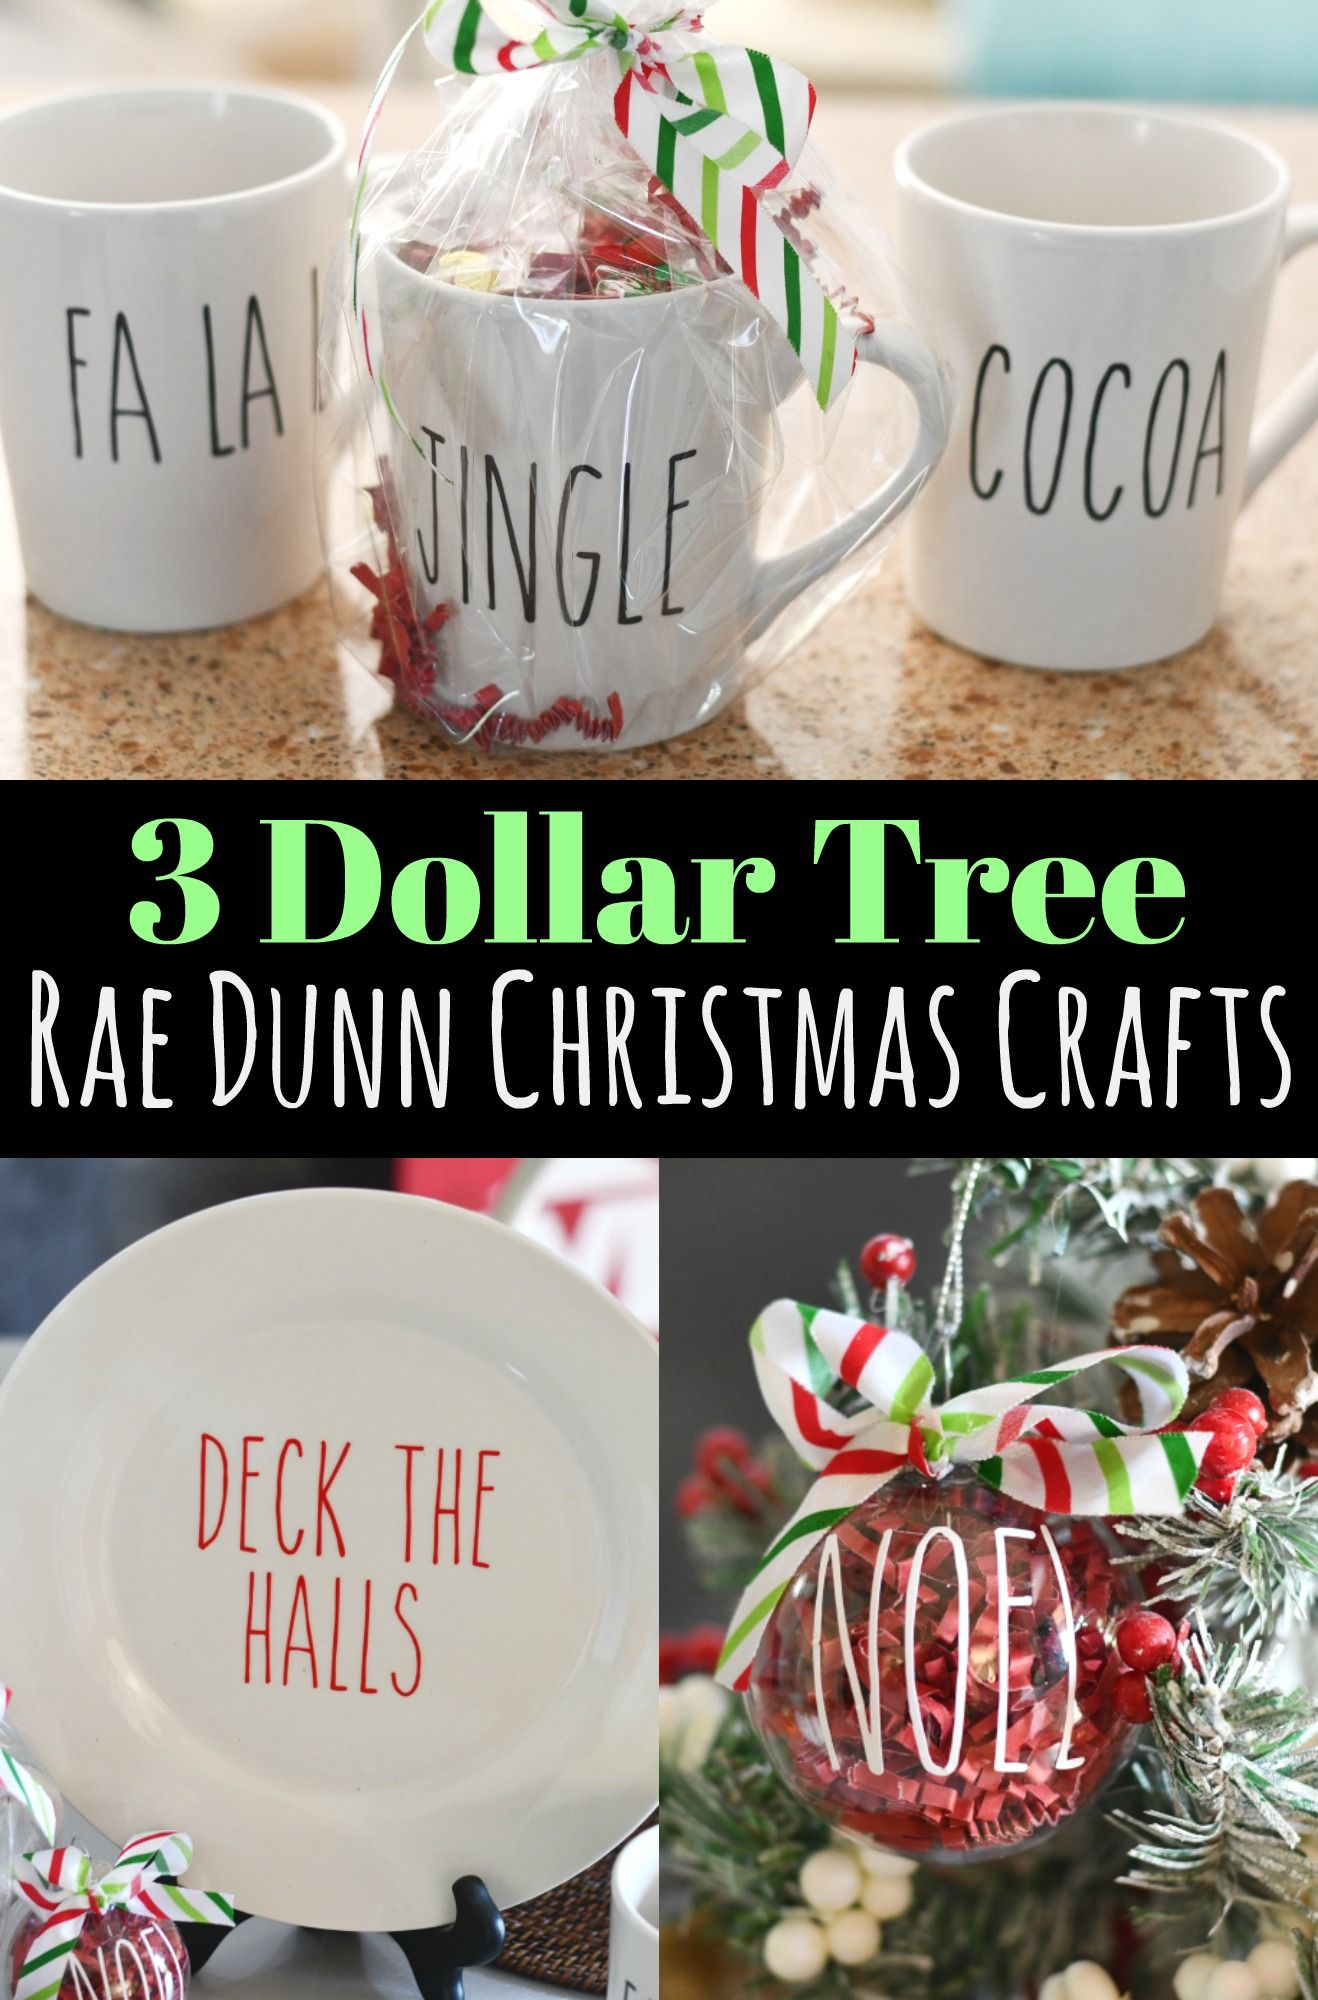 Rae Dunn Inspired Christmas Crafts from Dollar Tree Items! #dollarstorechristmascrafts